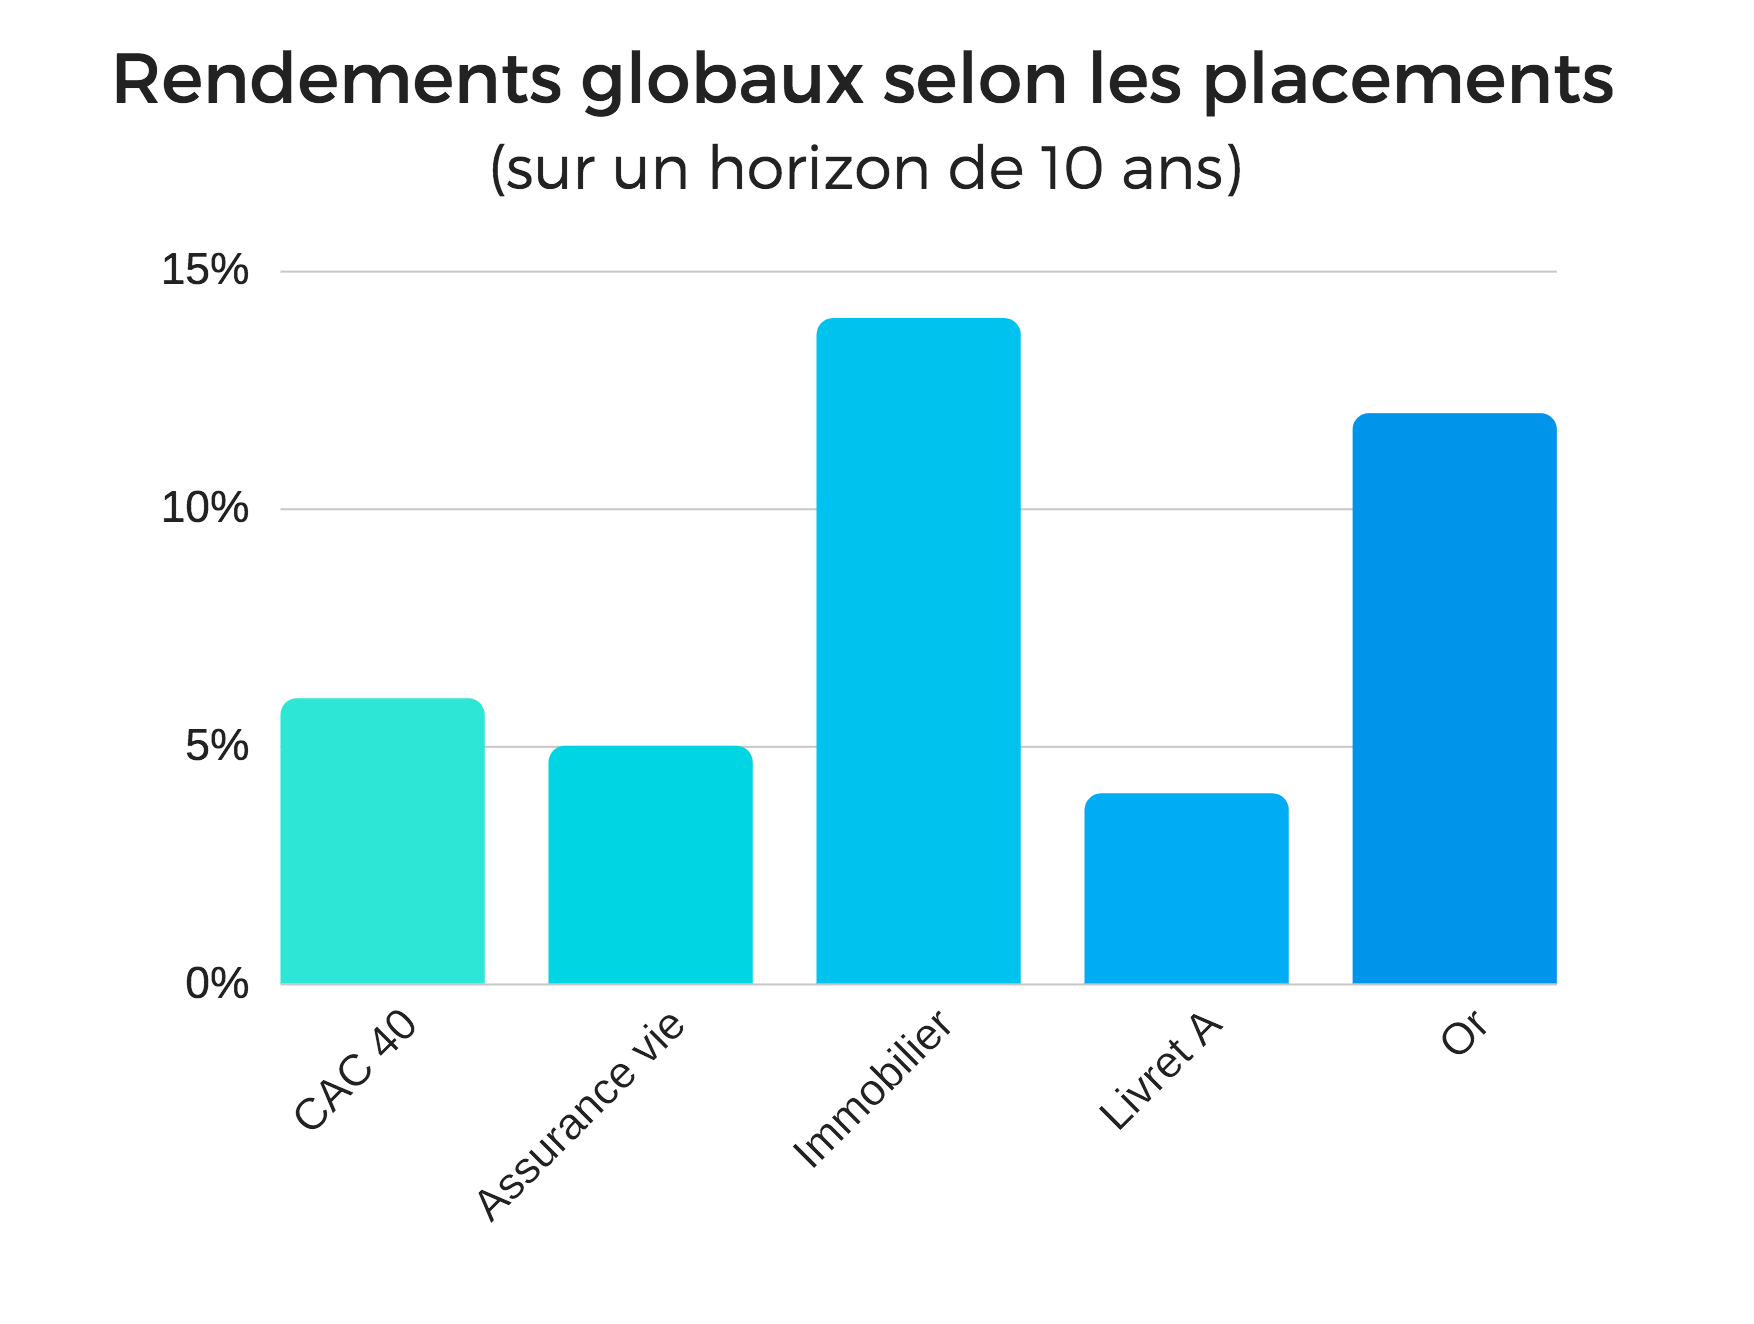 Rendements globaux selone les placements (horizon 10 ans)